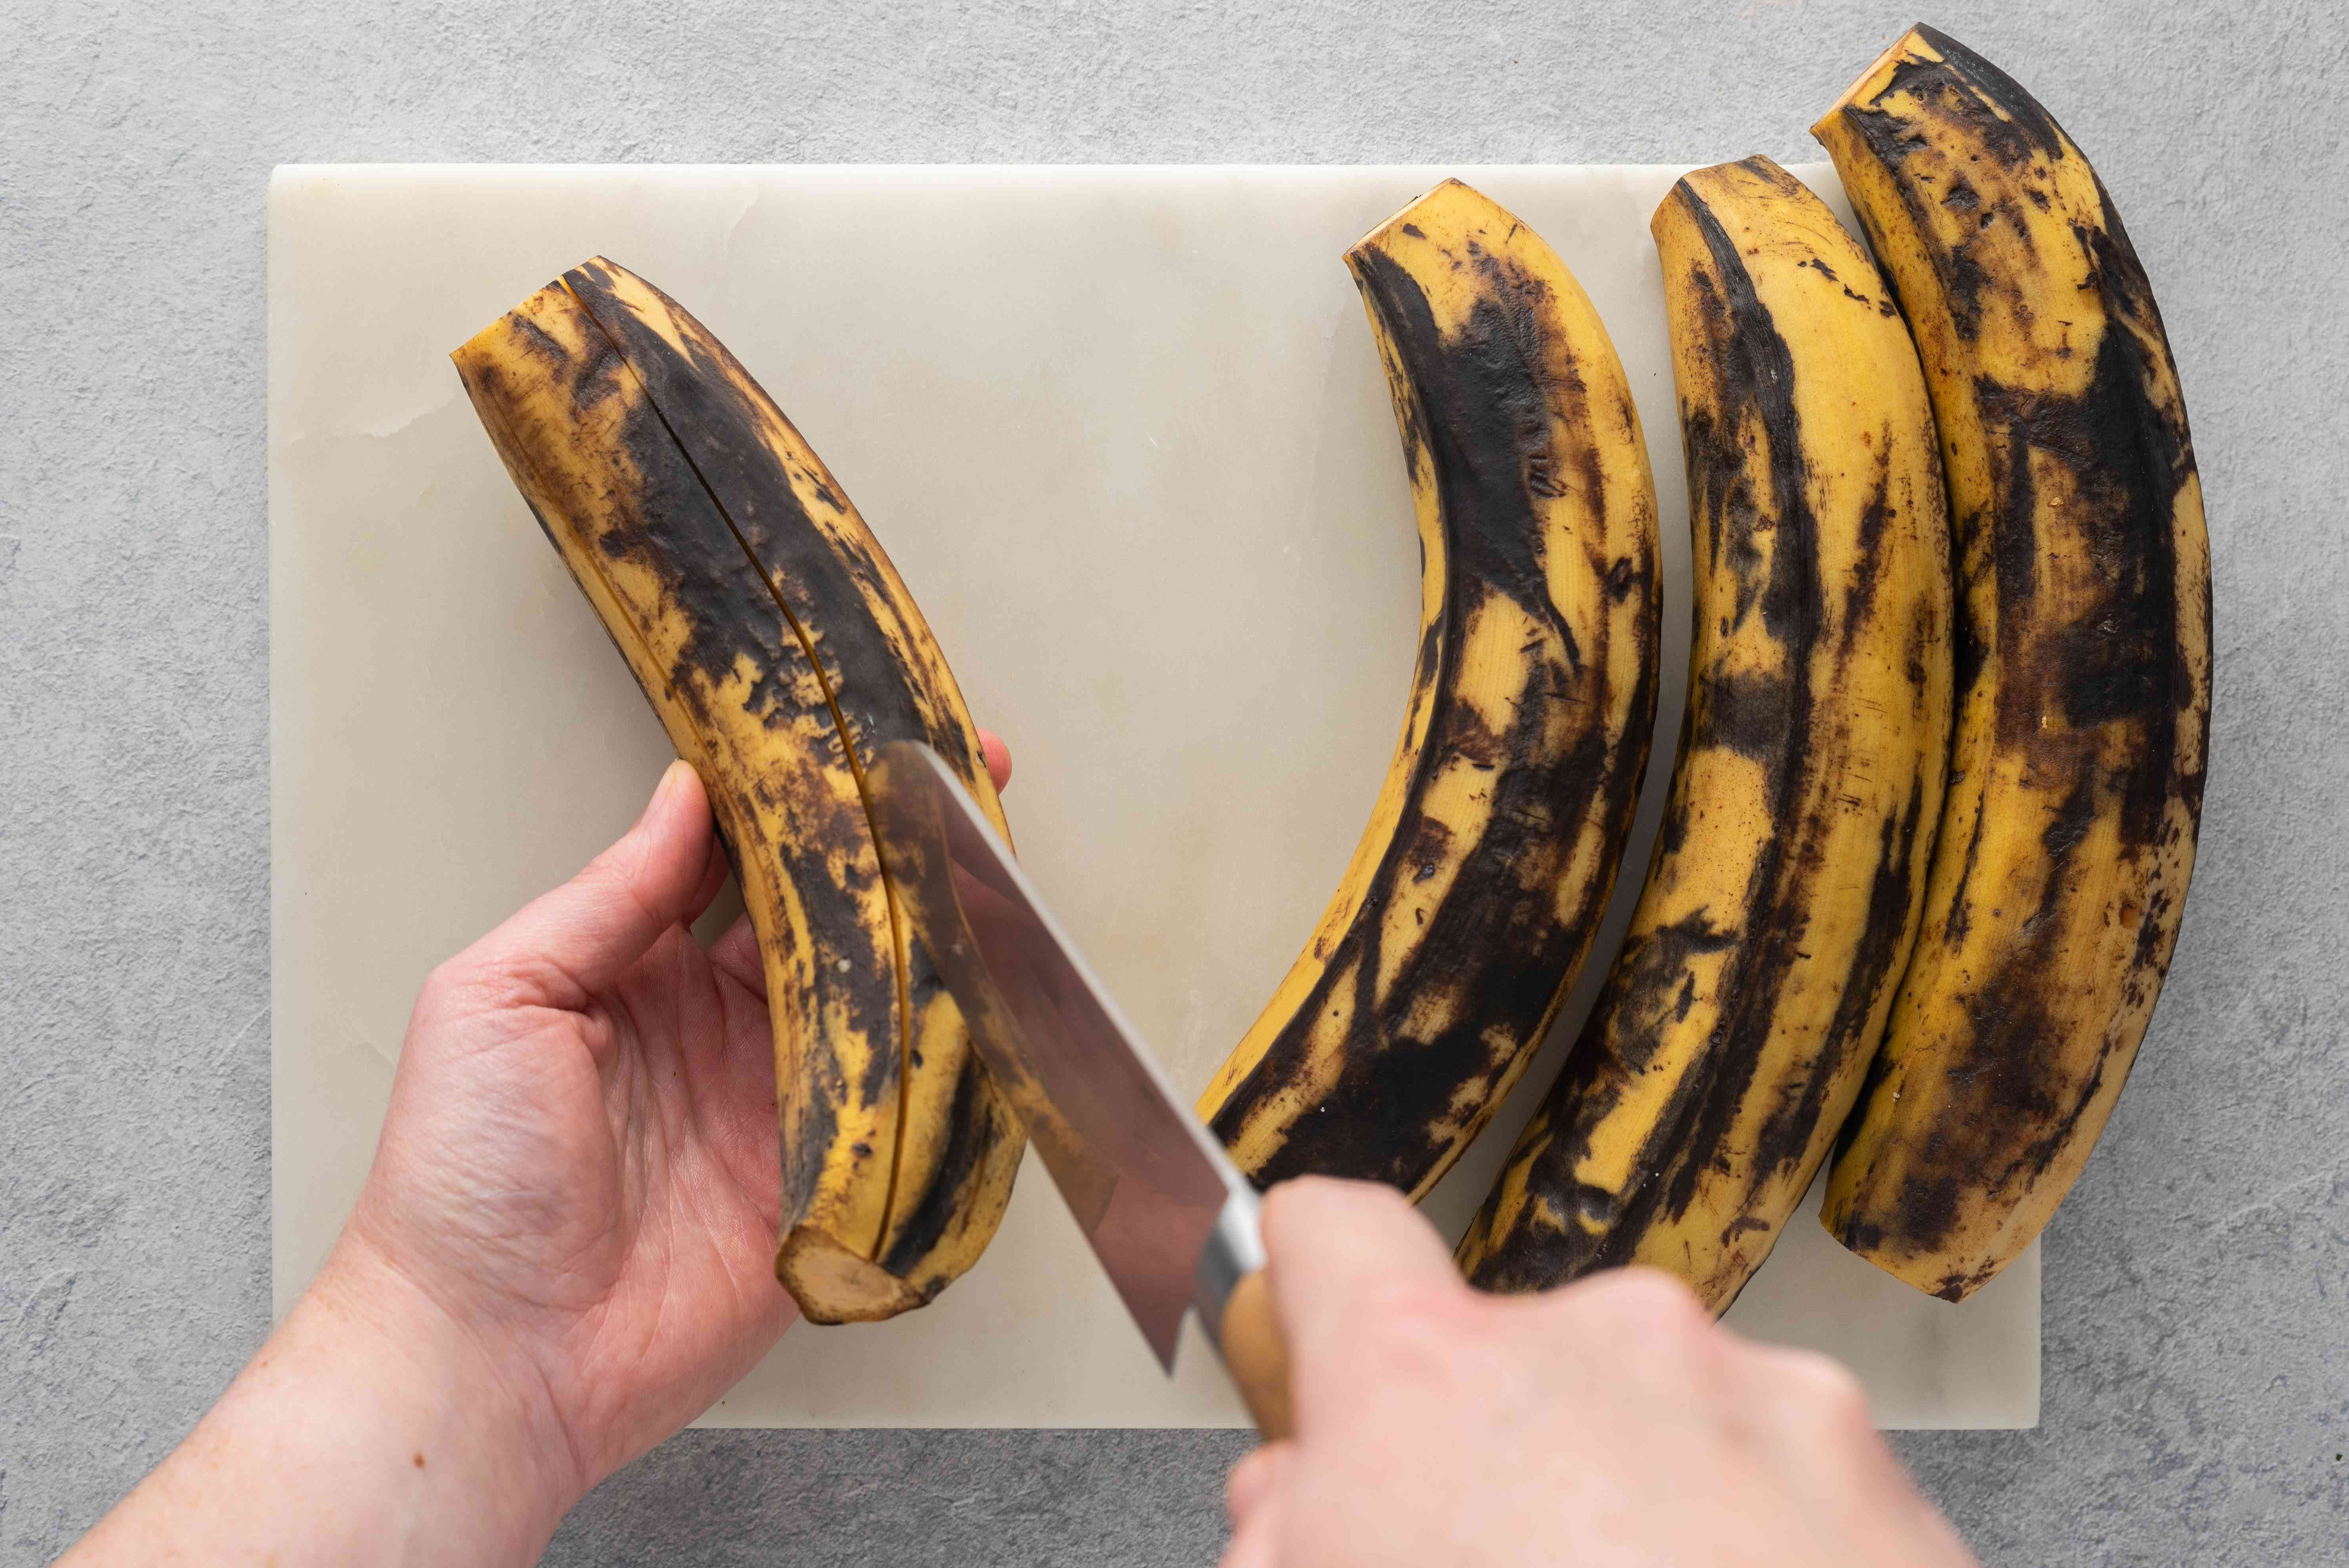 Score cuts through the skin down the length of the plantain